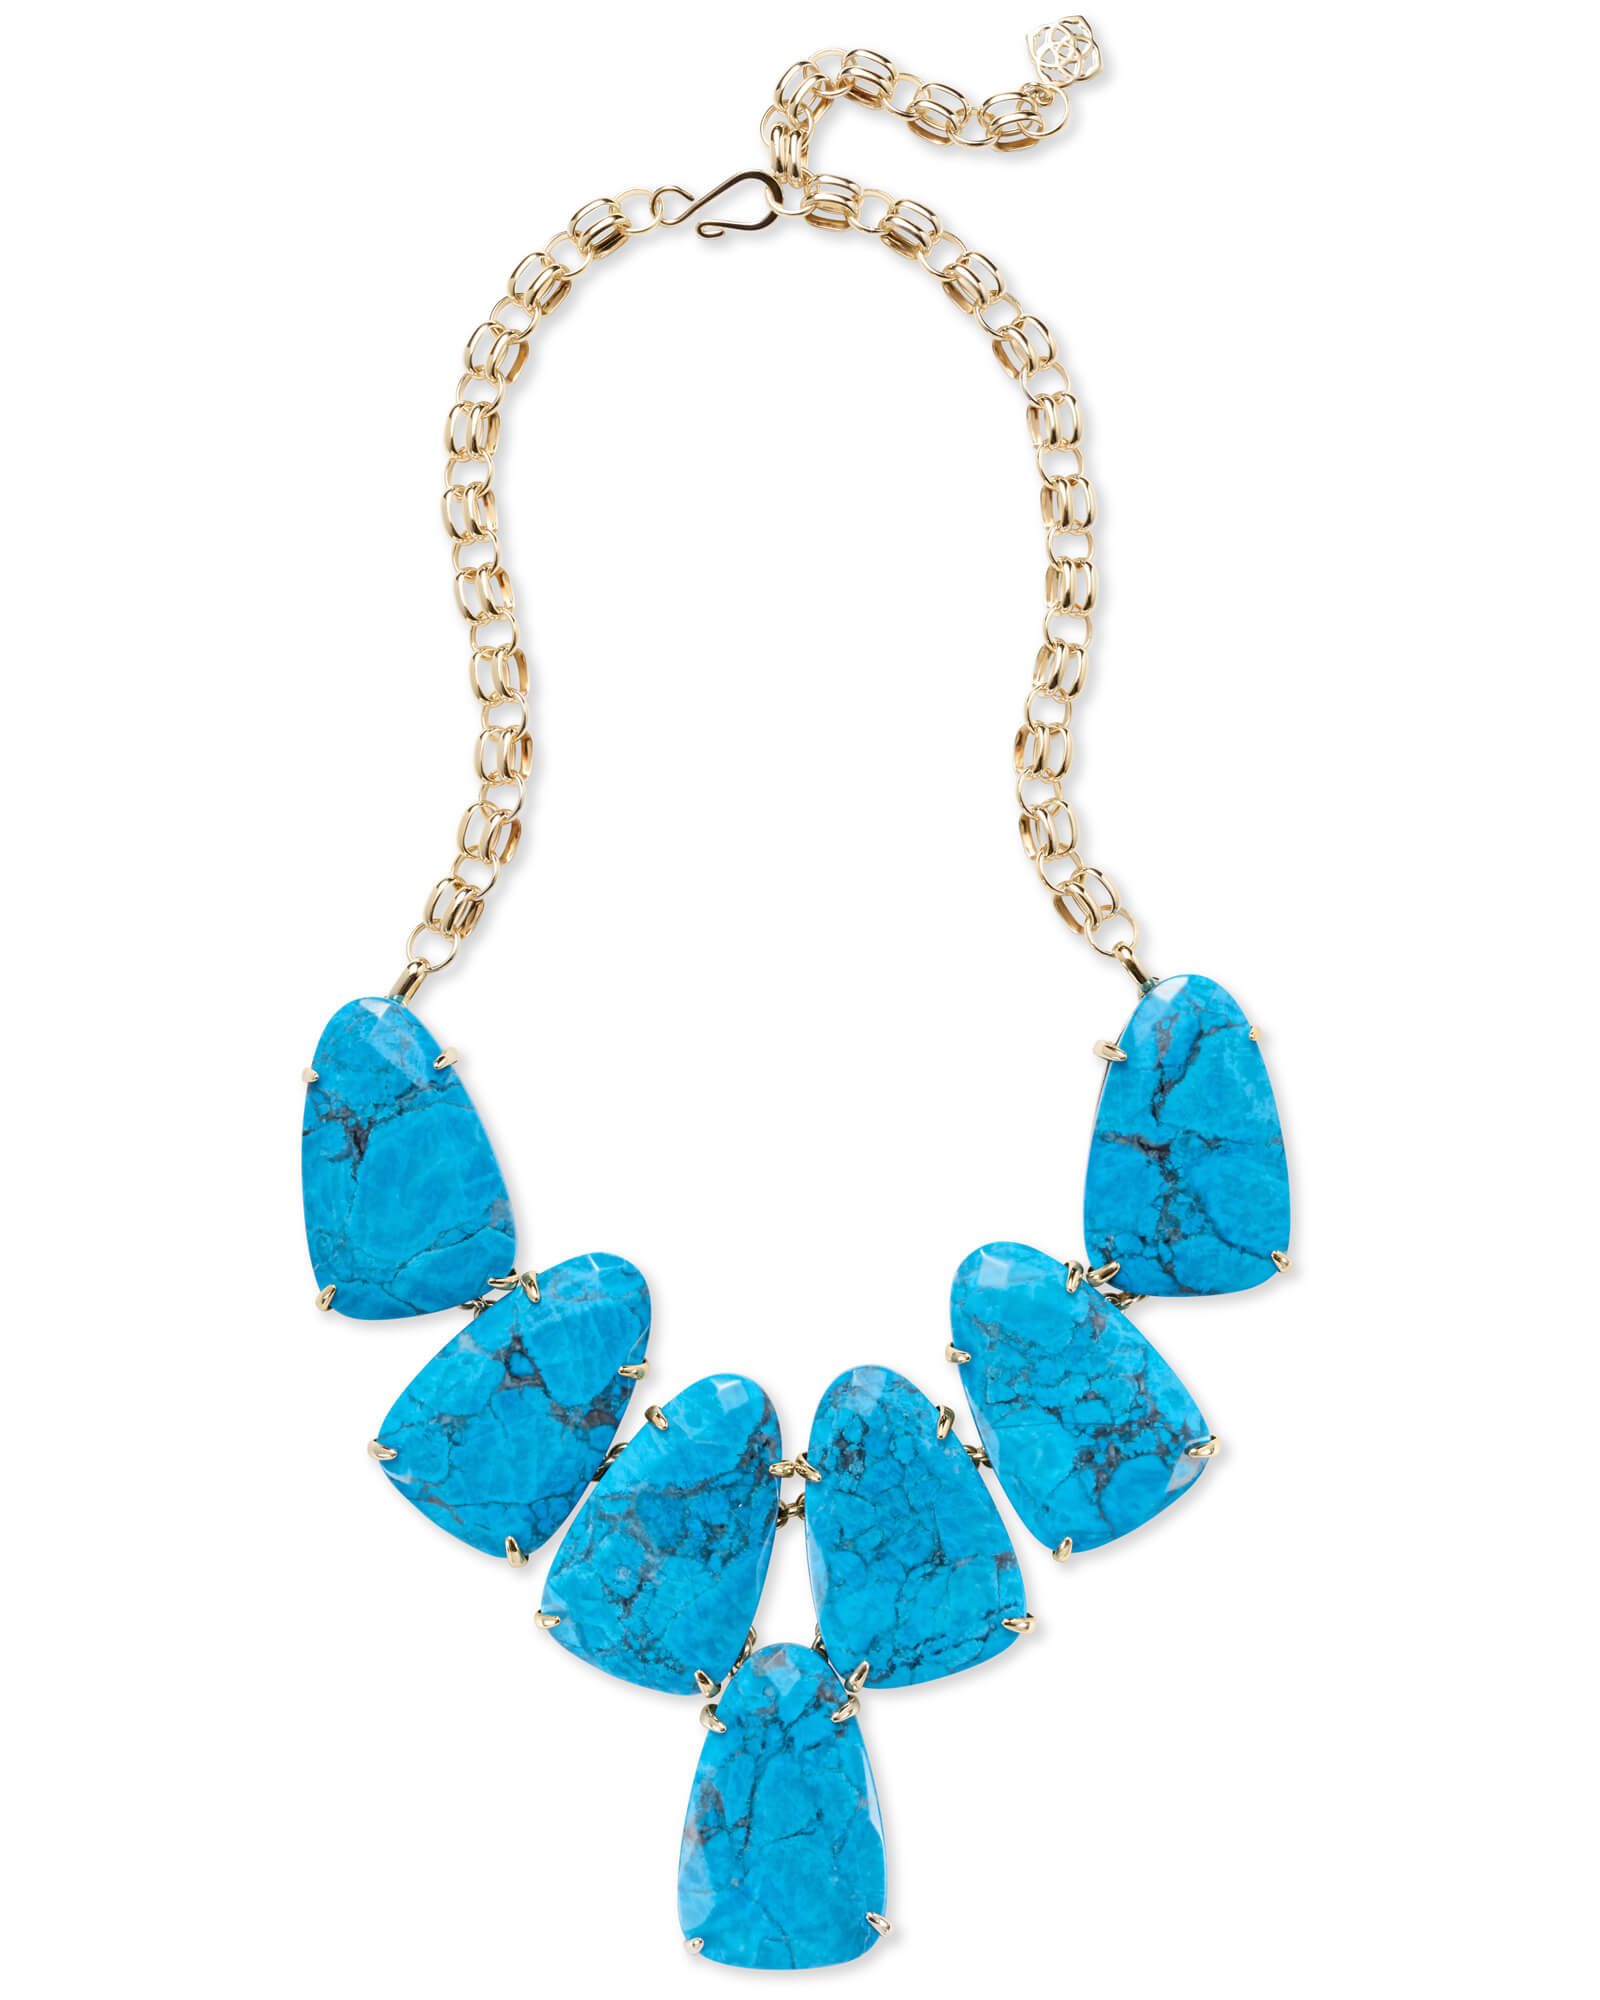 Harlow Gold Statement Necklace in Aqua Howlite